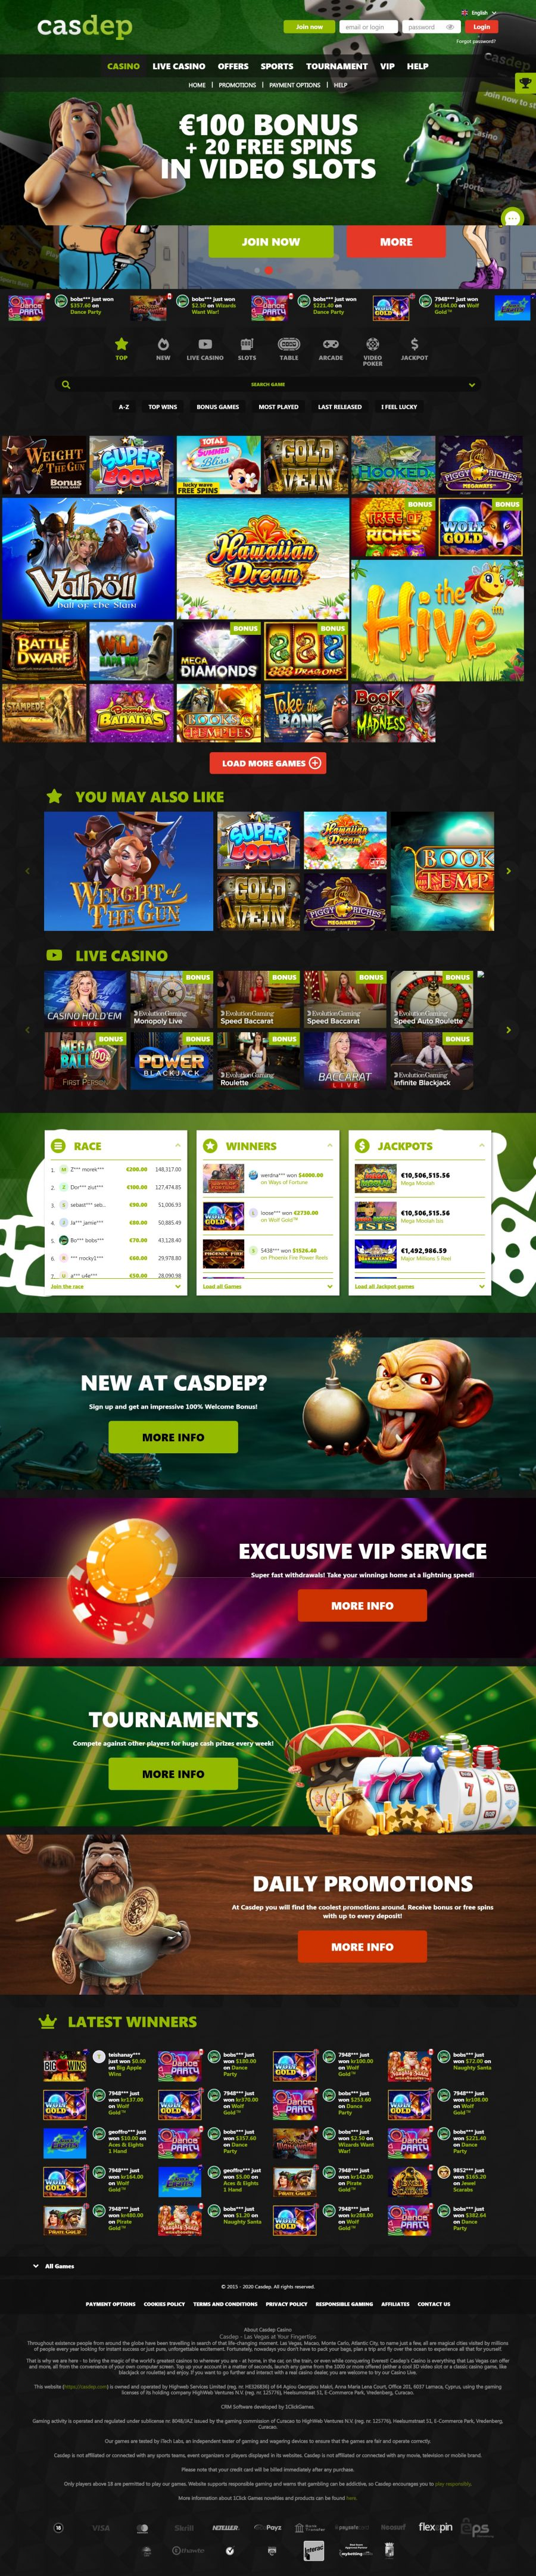 Casdep Casino  screenshot